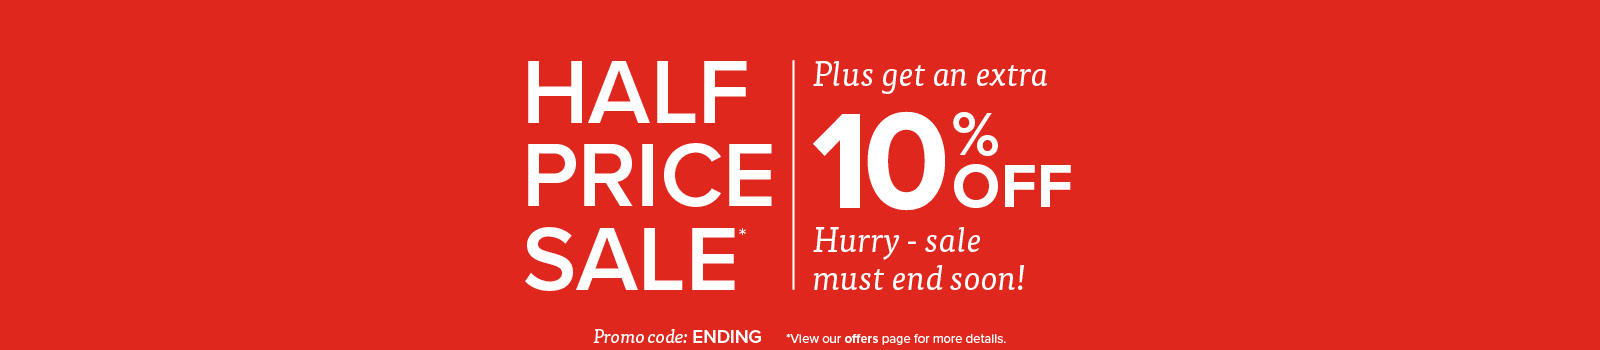 Use code ending for extra 10% off half price sale